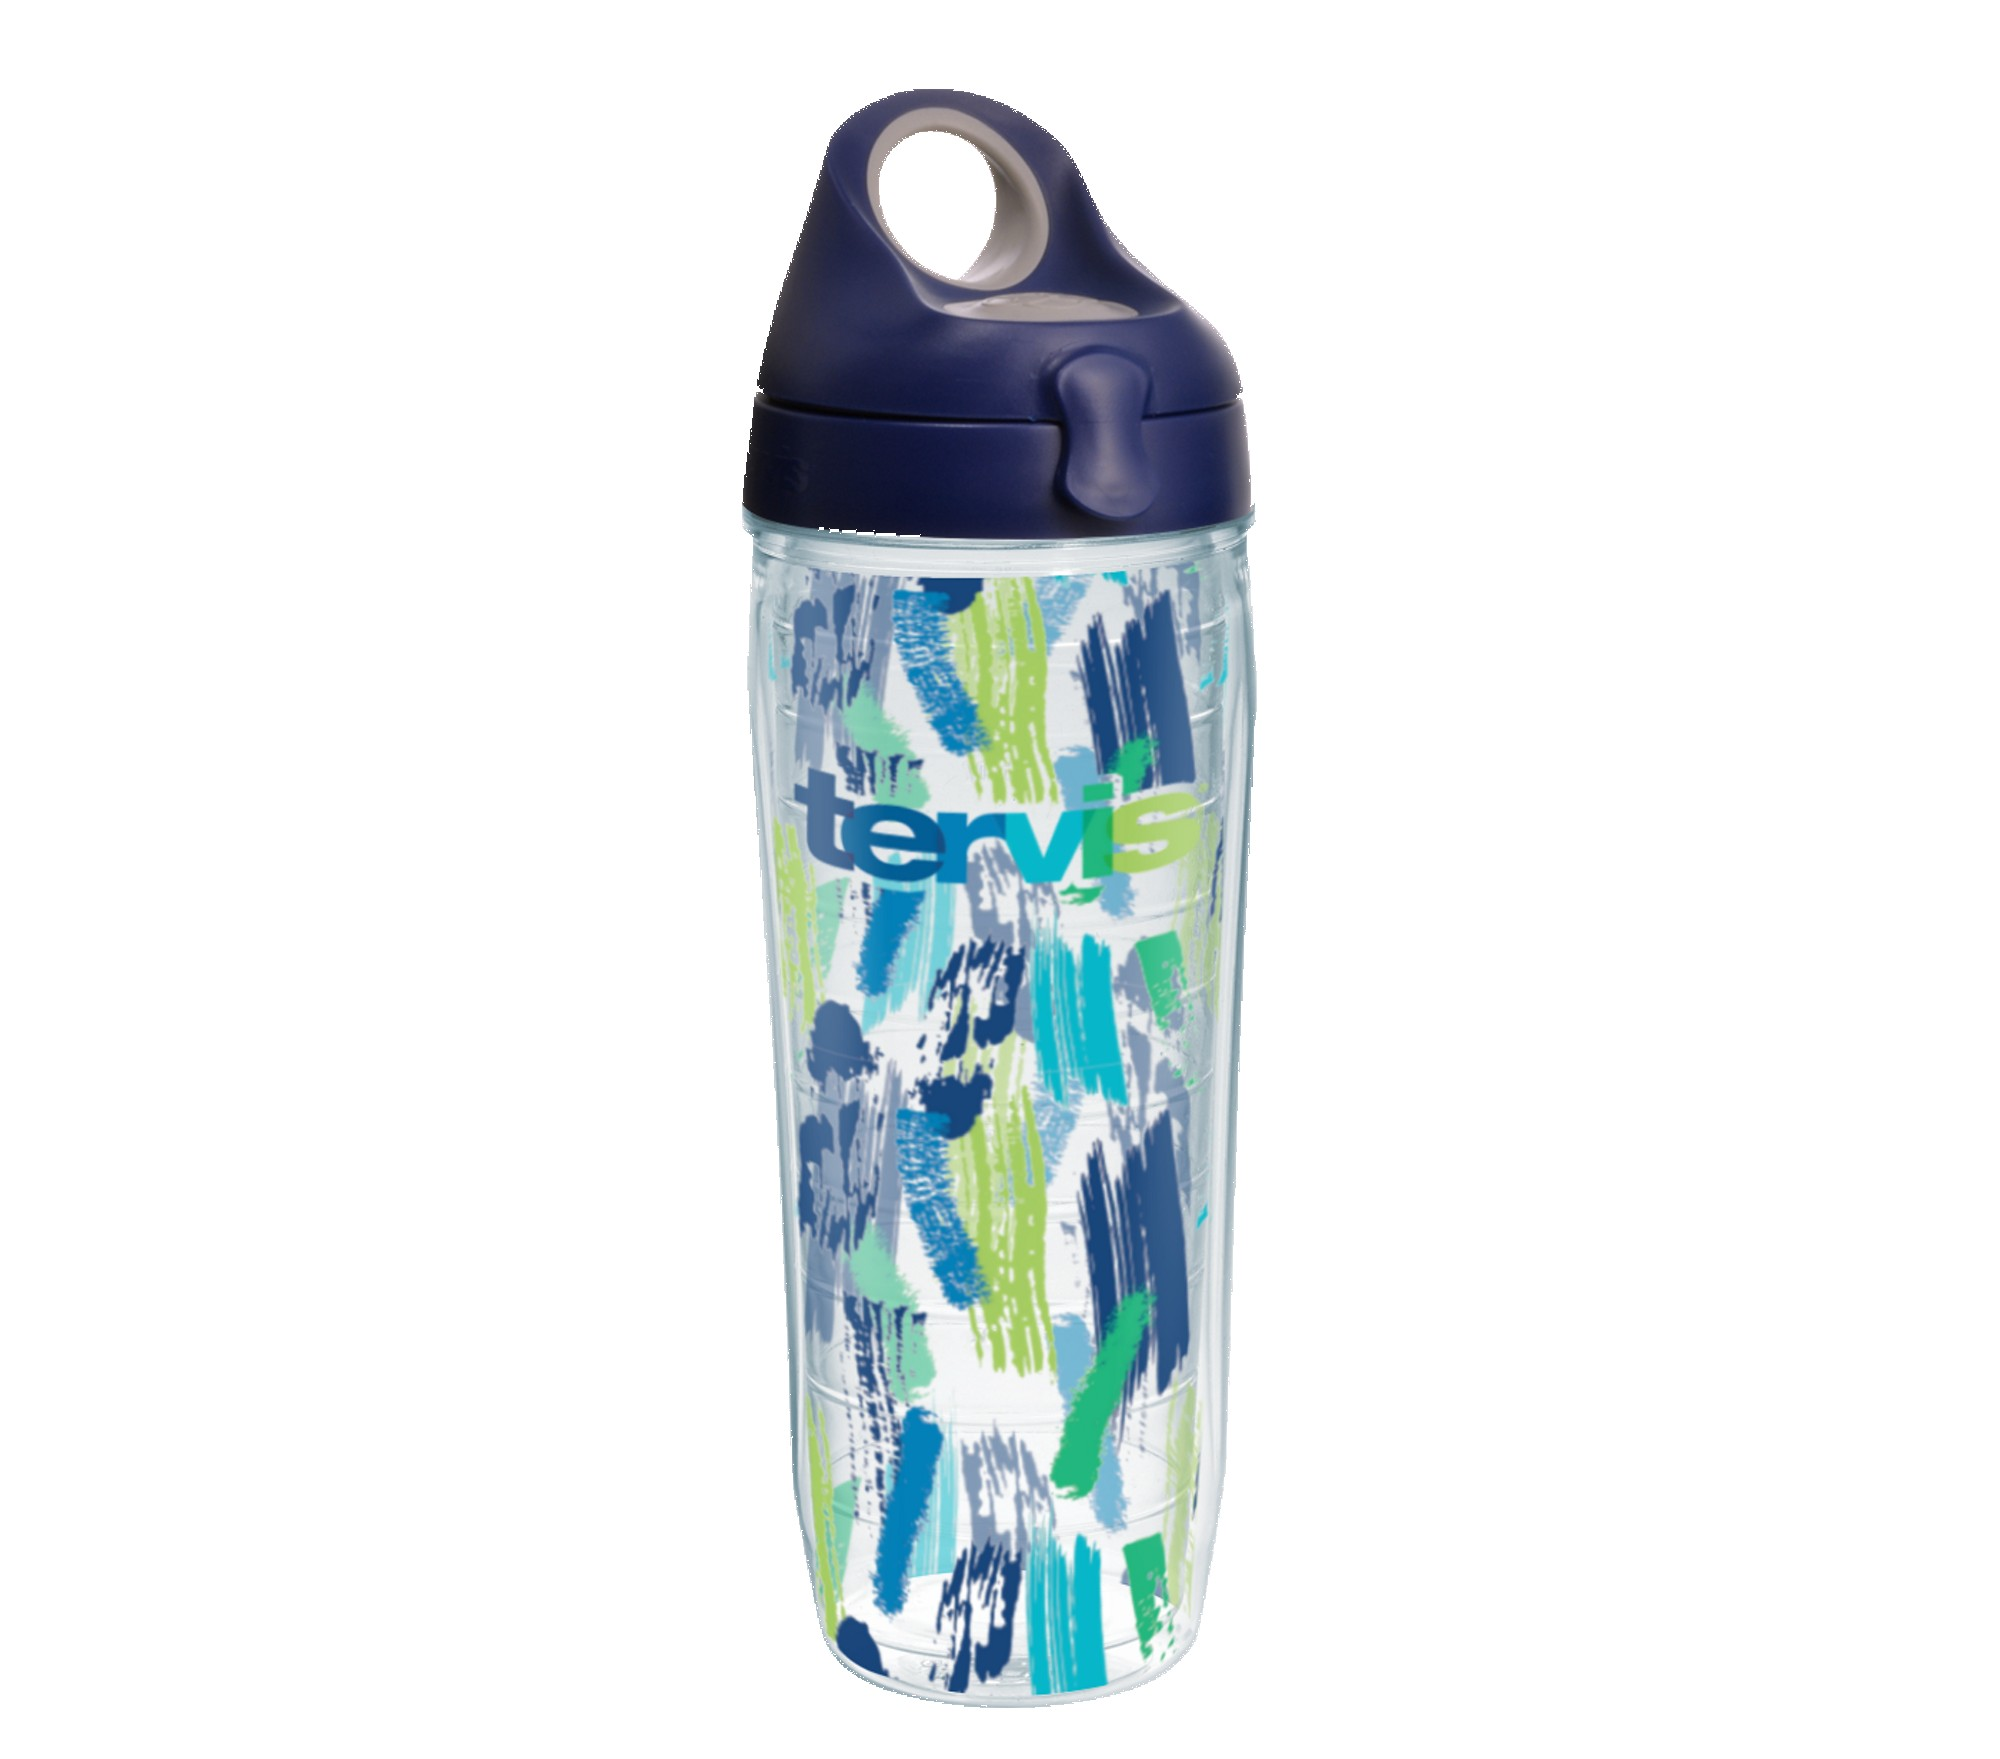 Tervis Water Bottle with lid